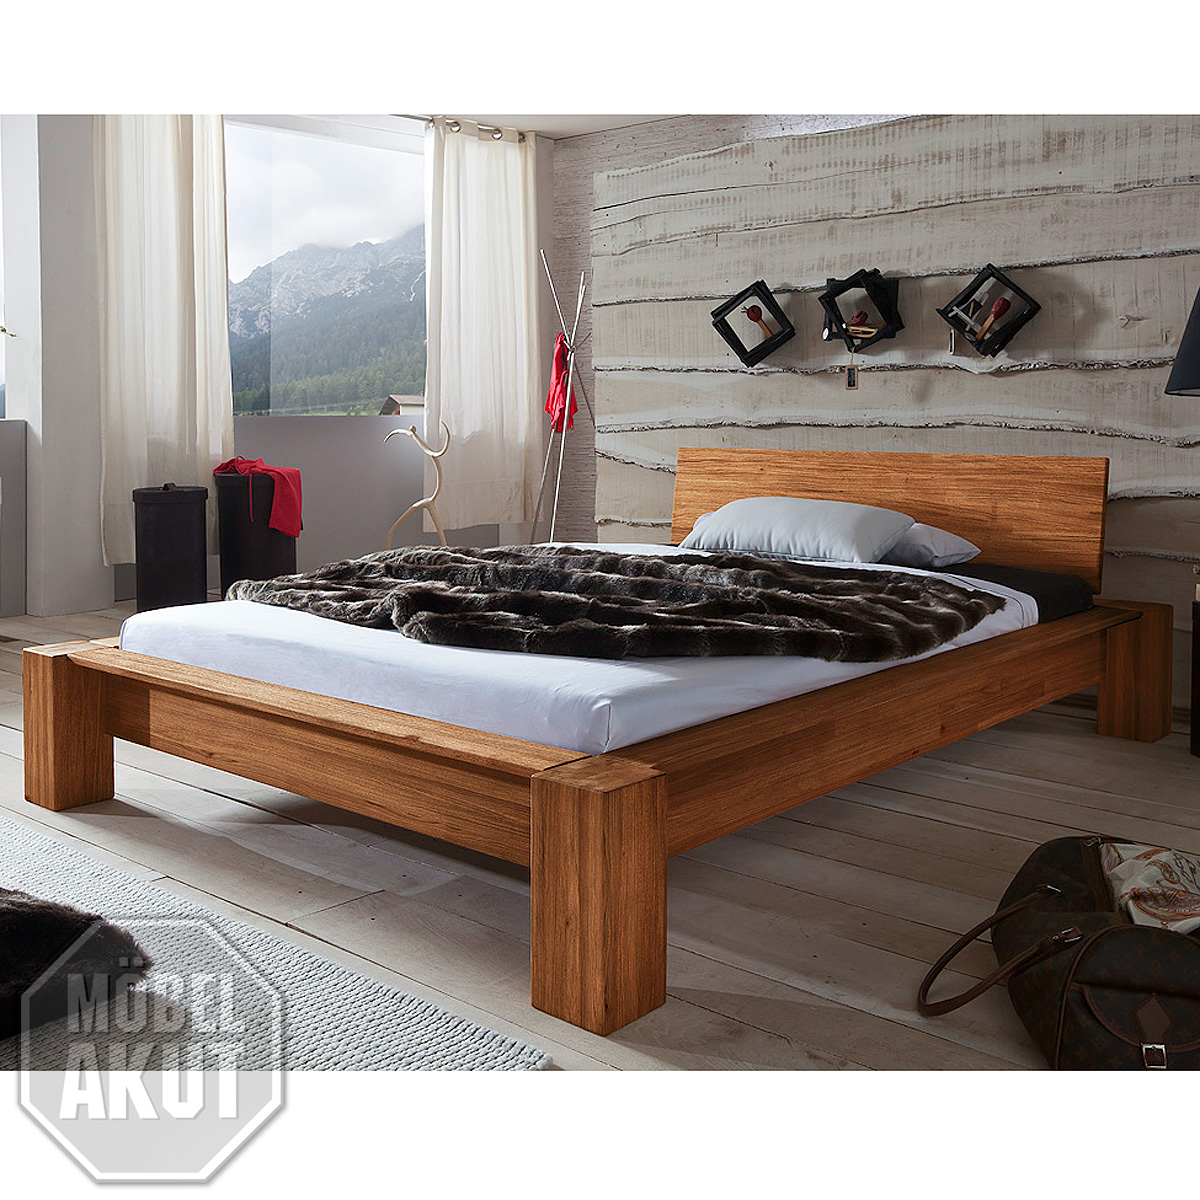 bett lena futonbett bettgestell in wild eiche massiv natur ge lt 180x200 cm ebay. Black Bedroom Furniture Sets. Home Design Ideas